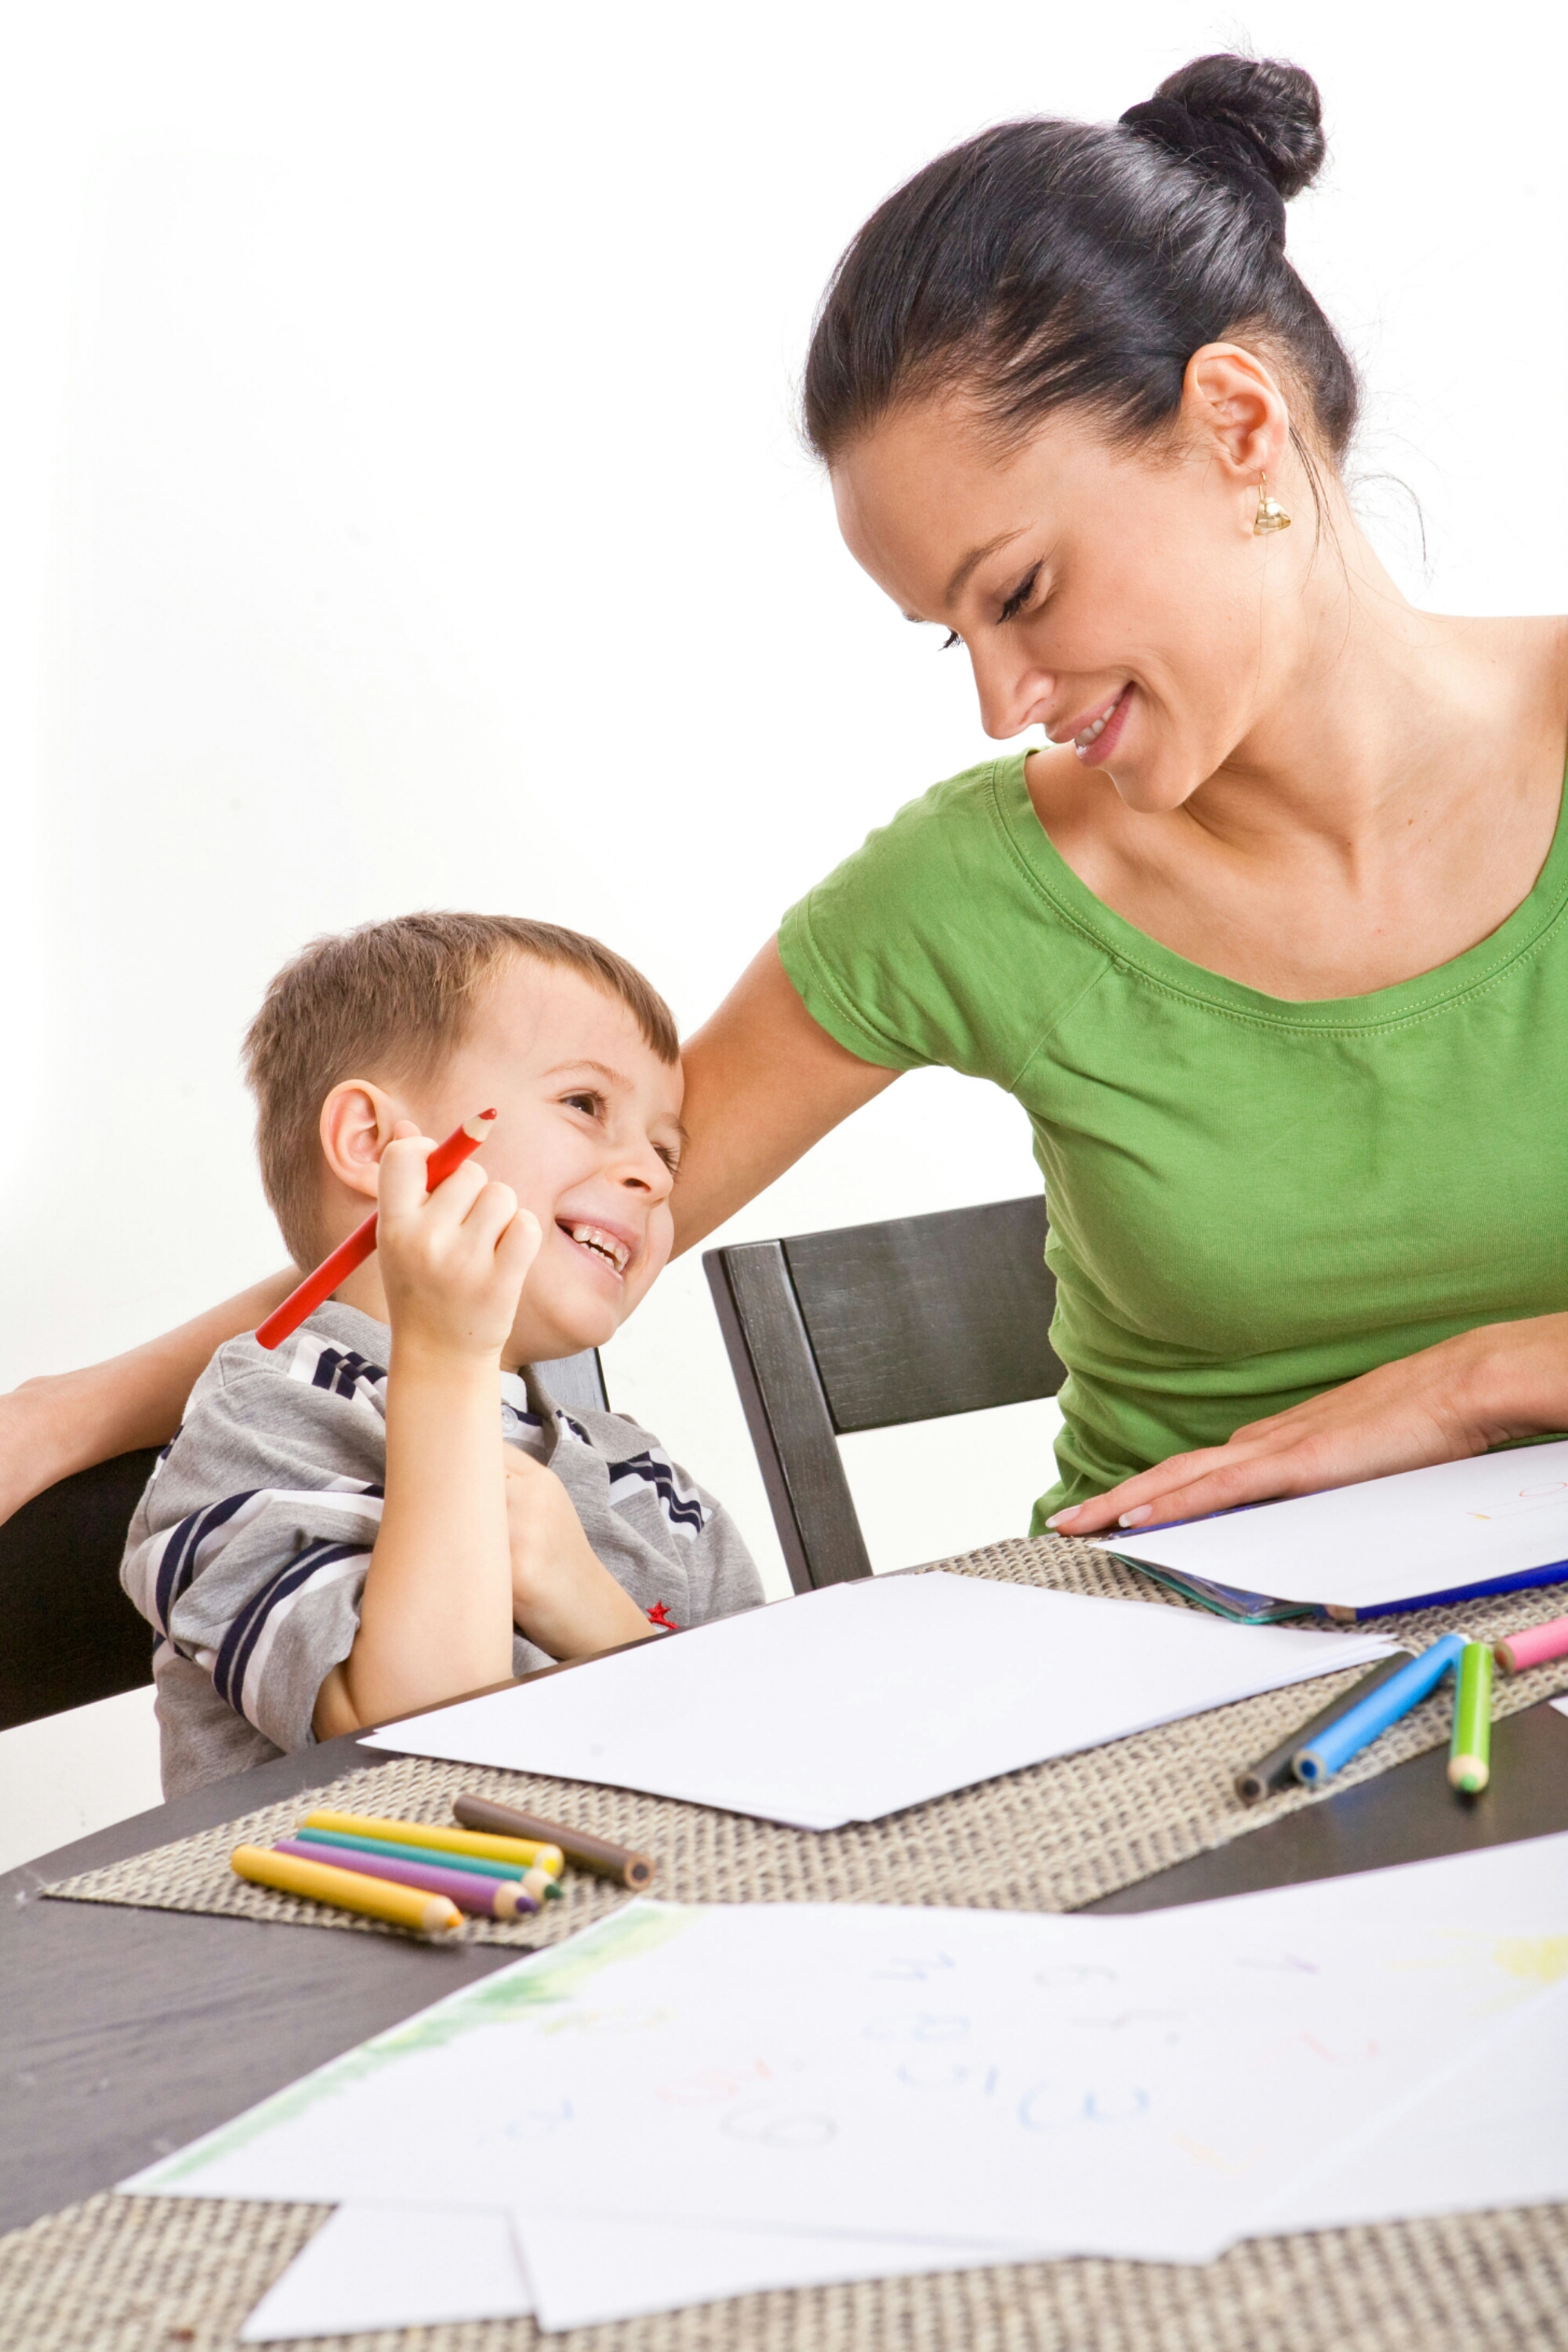 child care study coursework Learn chapter 7 child development guide with free interactive flashcards choose from 500 different sets of chapter 7 child development guide flashcards on quizlet.